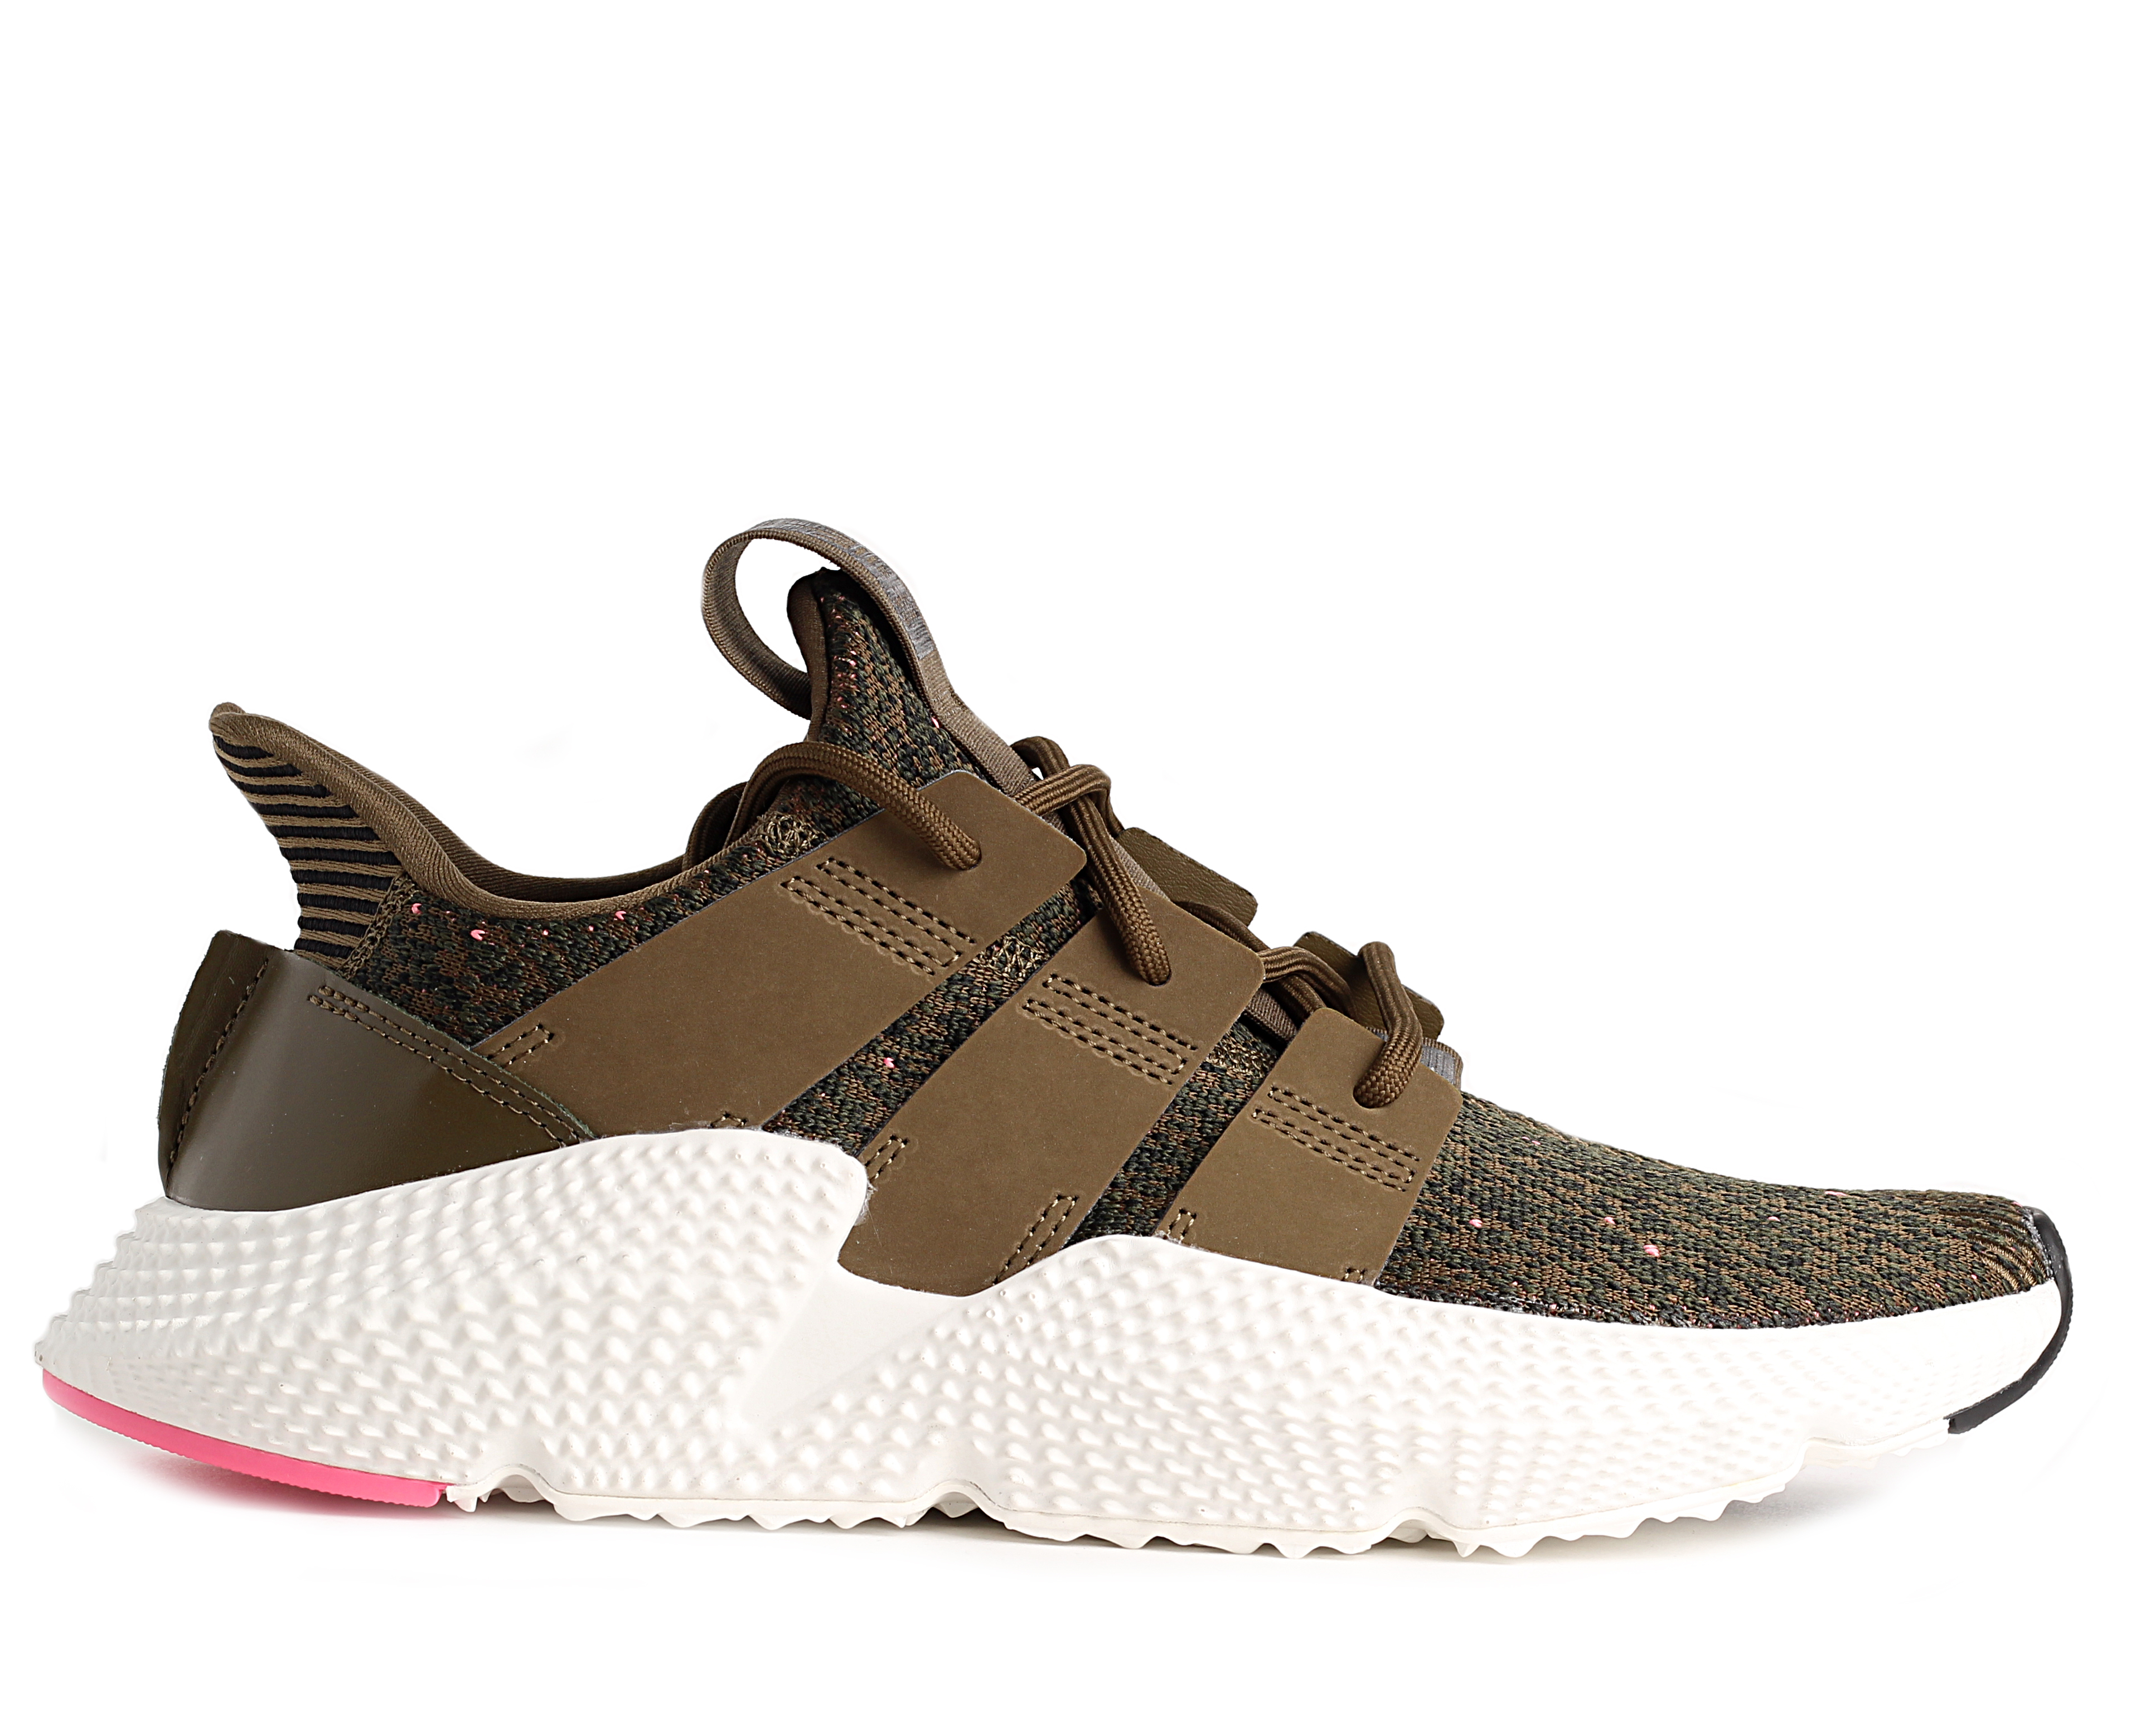 Adidas Prophere Trace Olive / Trace Olive / Chalk Pink - Boardvillage